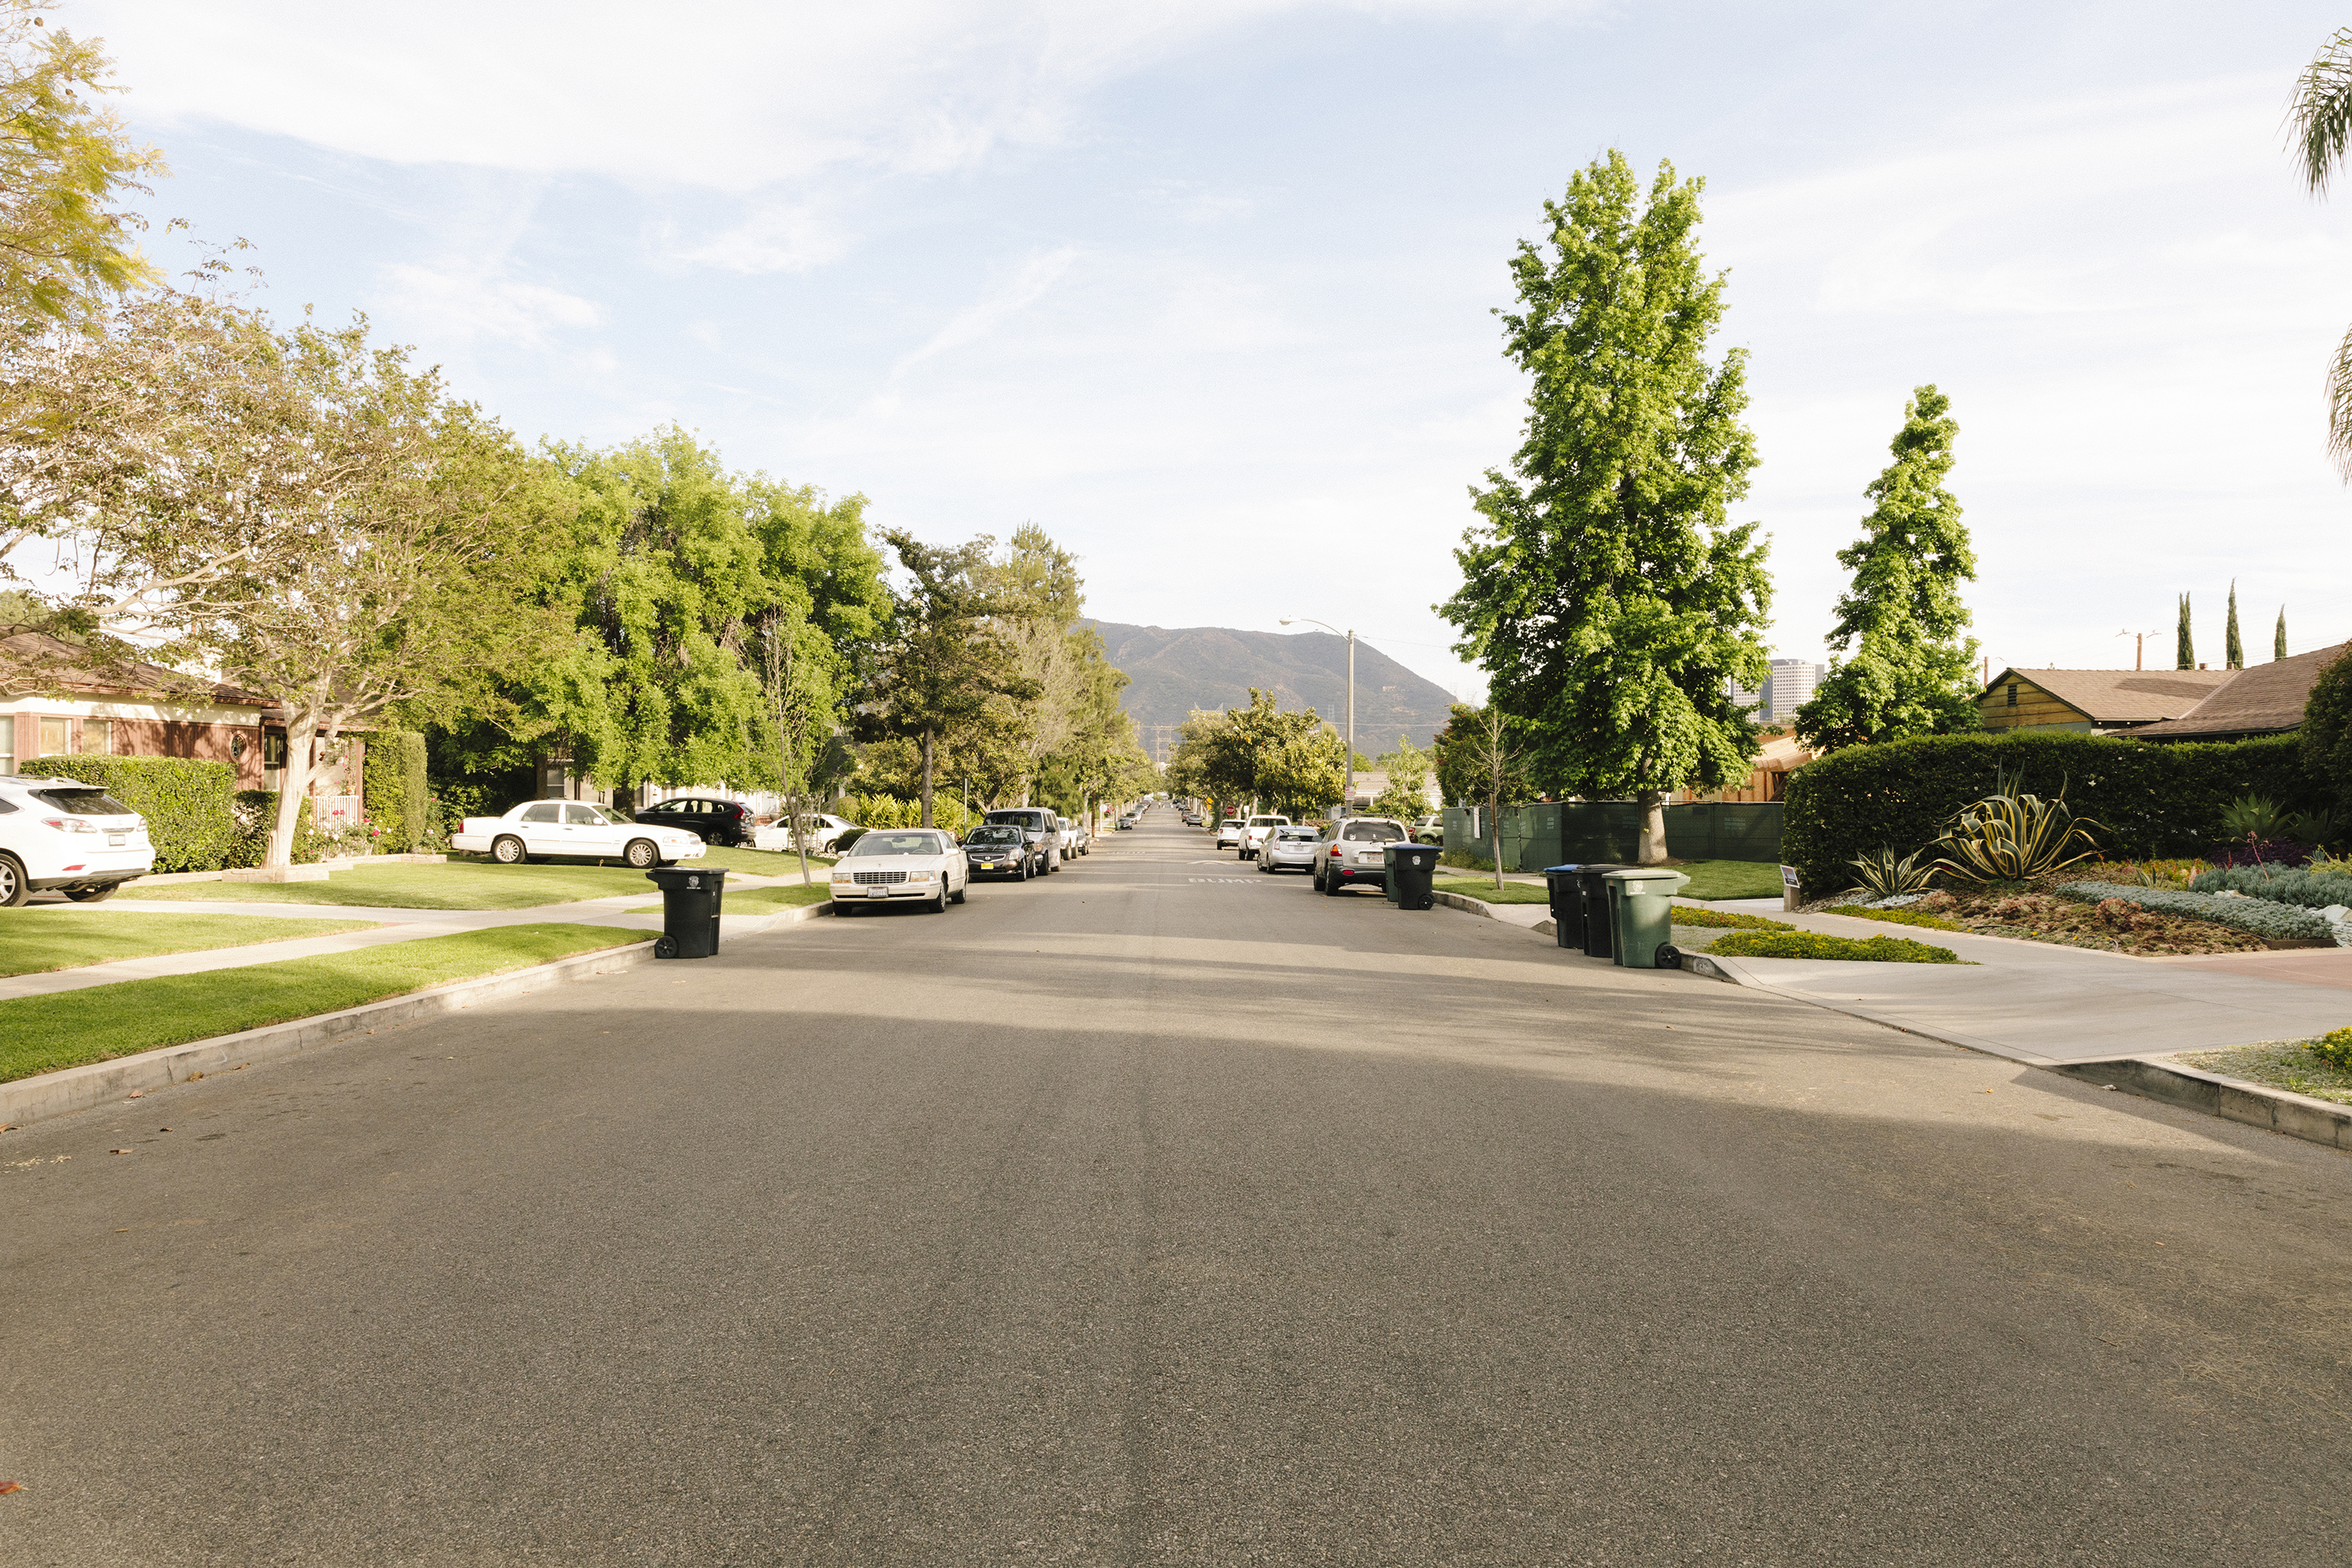 Valley residential street